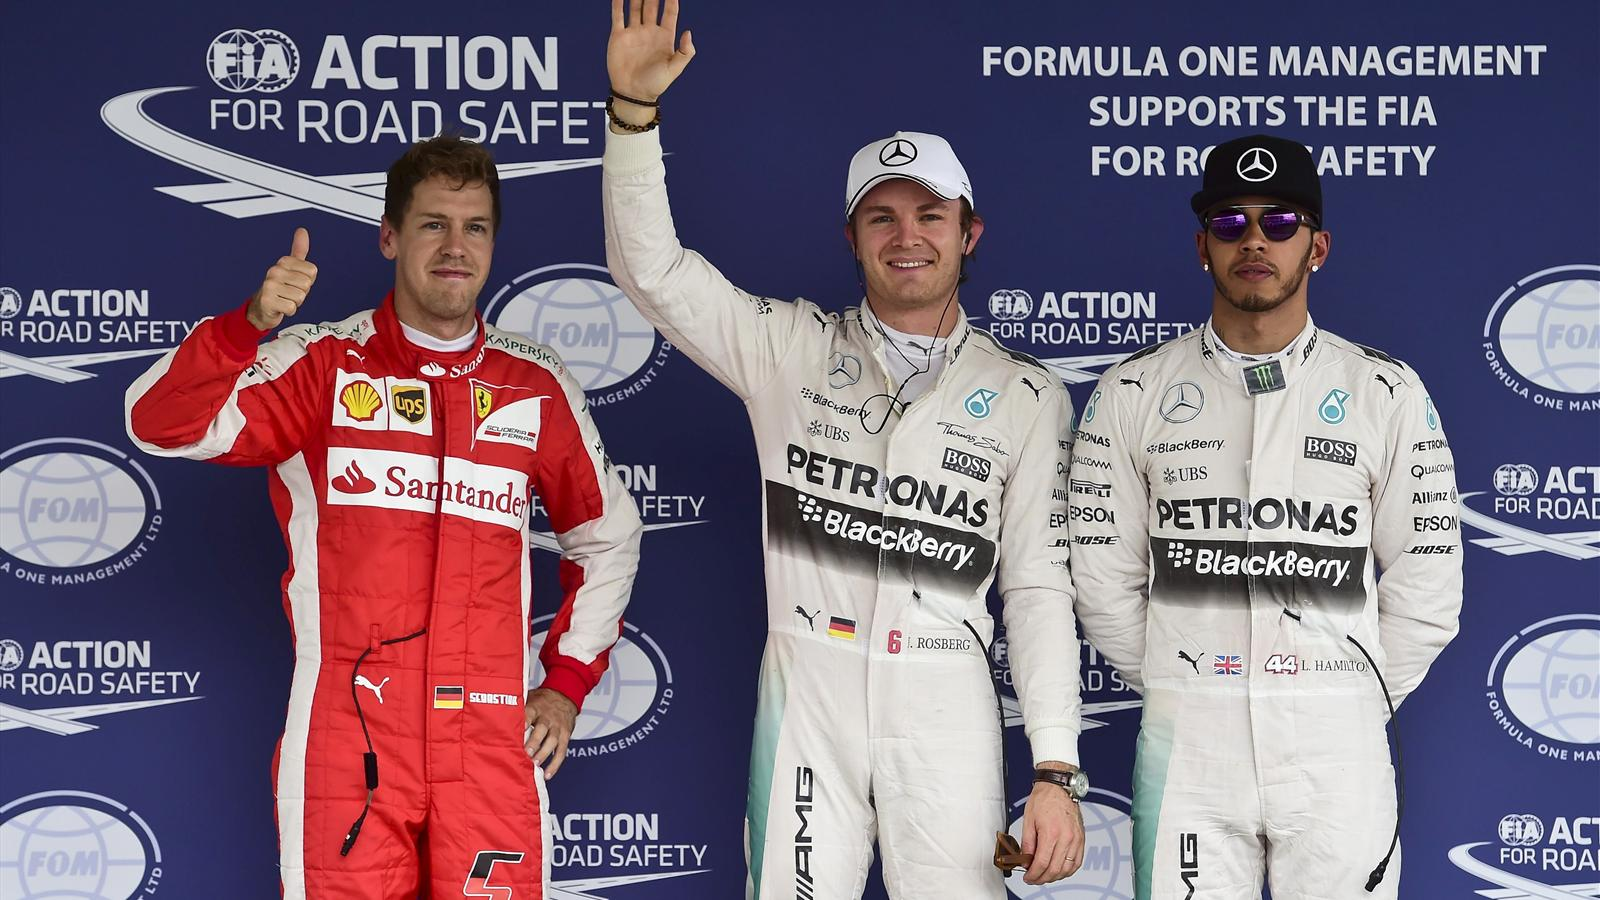 Mercedes Formula One drivers Lewis Hamilton of Britain (R) and Nico Rosberg of Germany pose with Ferrari Formula One driver Sebastian Vettel of Germany (L) after the qualifying session for the Mexican F1 Grand Prix